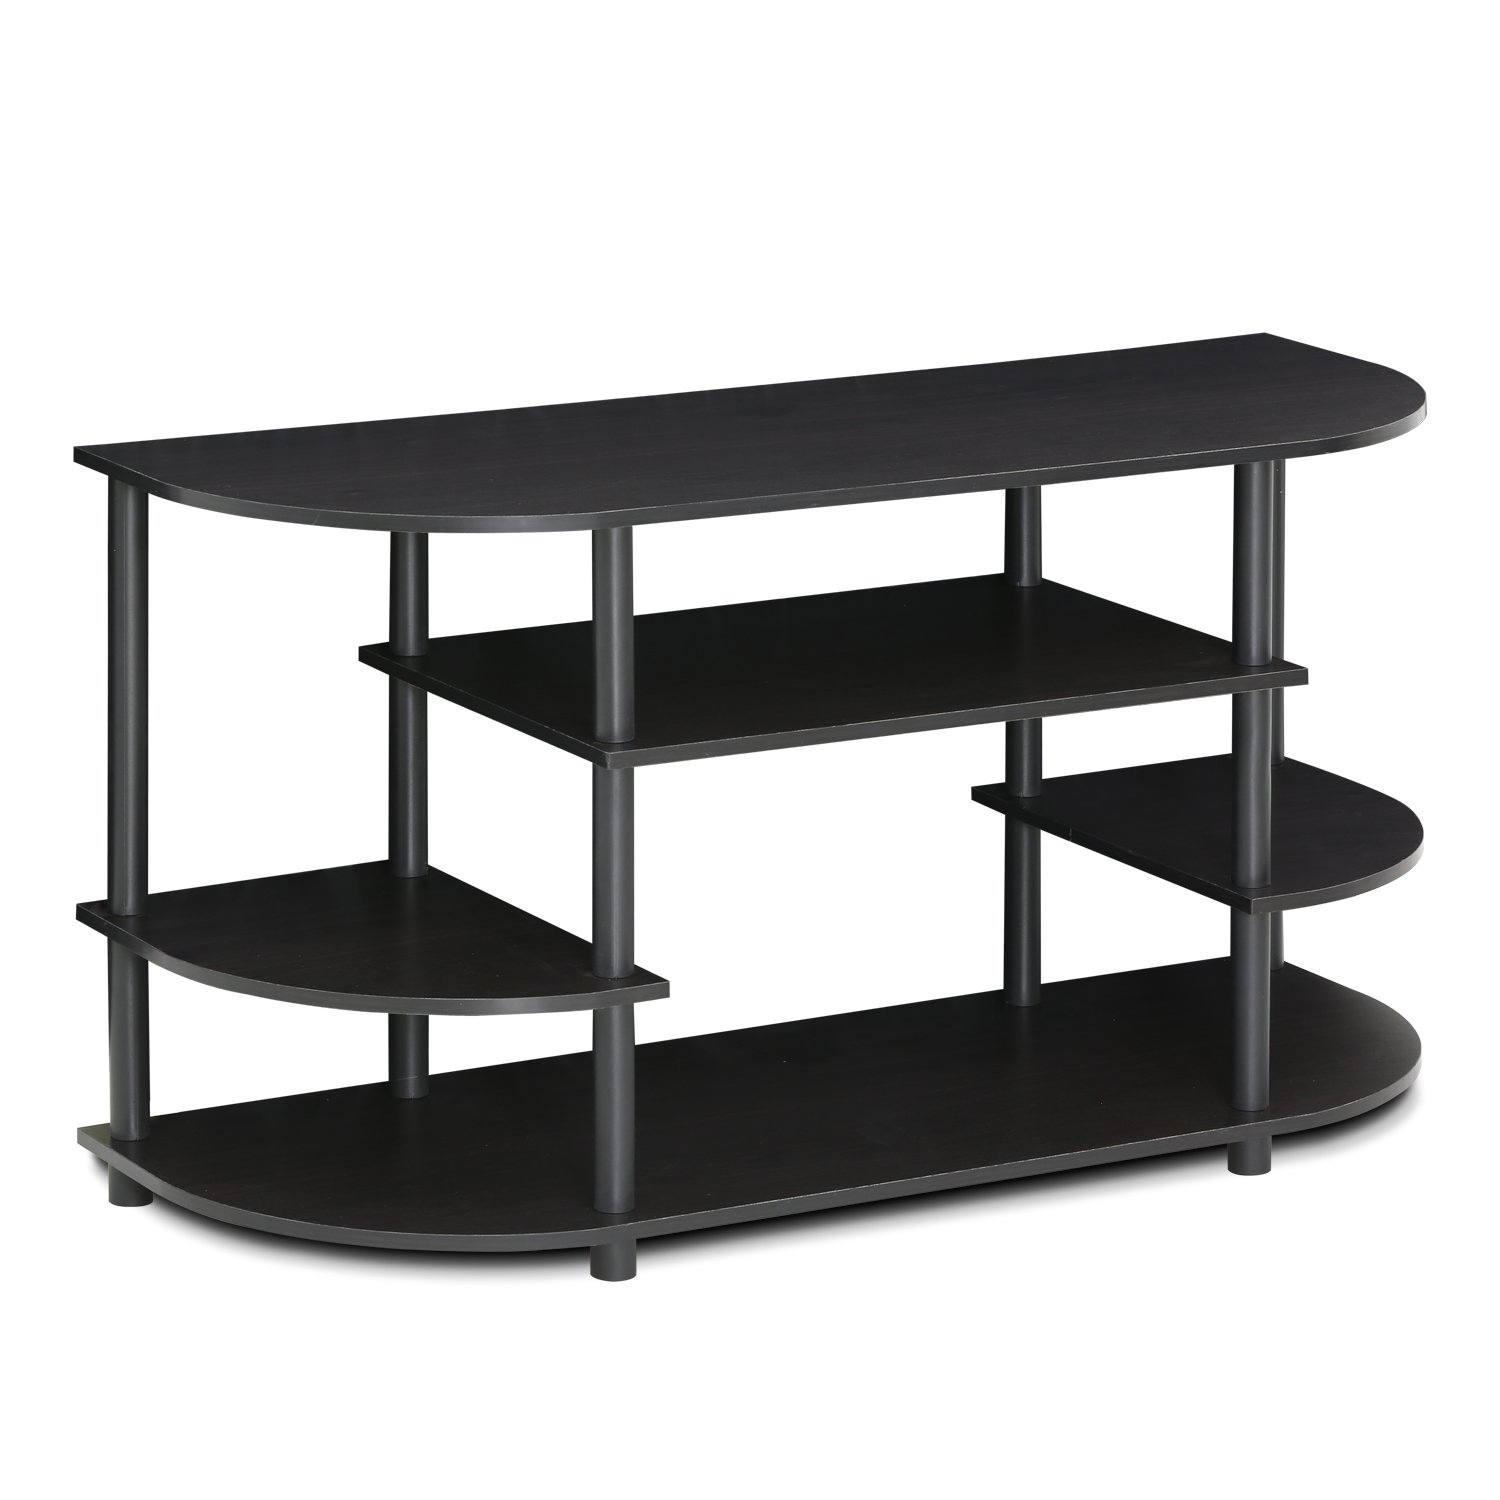 Furinno JAYA Simple Design Corner TV Stand, Espresso Black